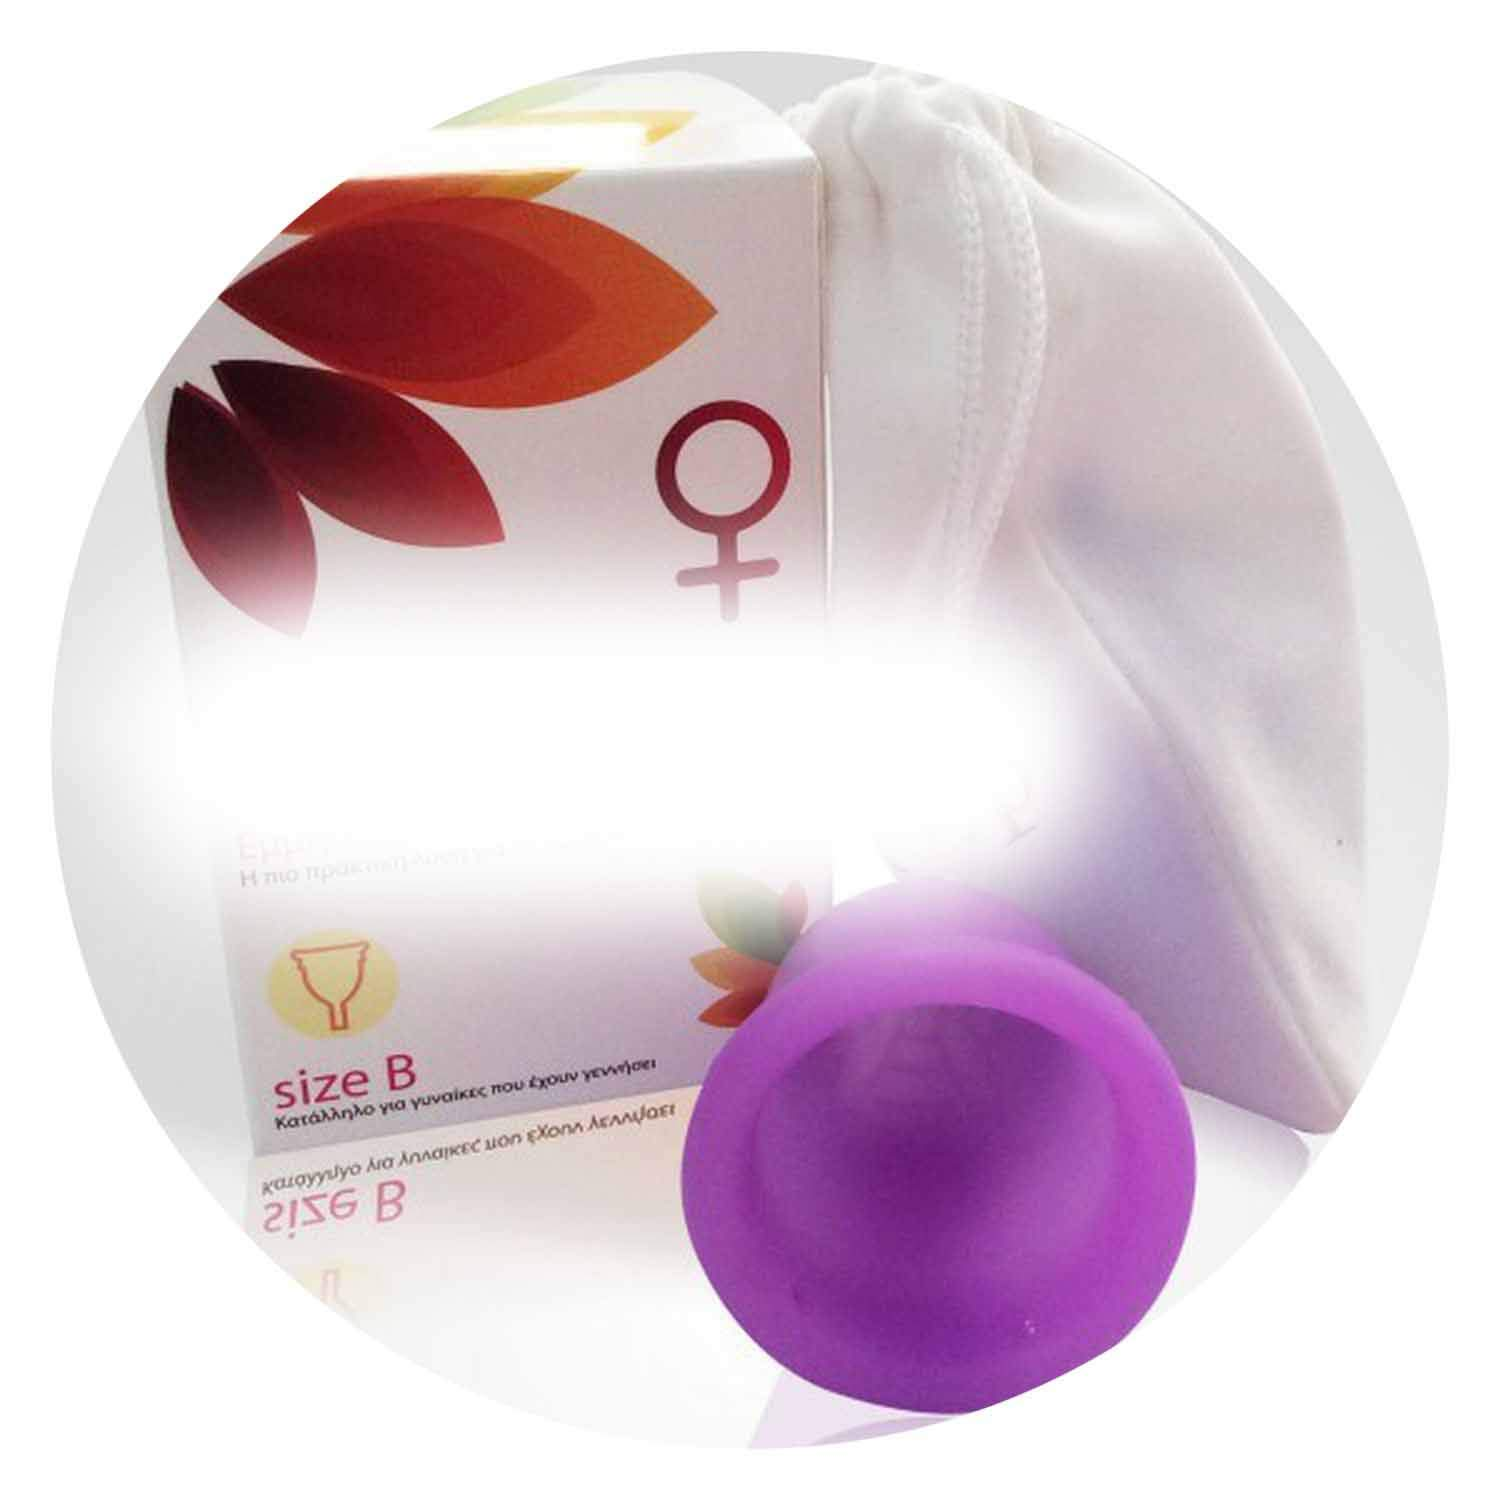 10pcs New Arriving Reusable Grade Silicone Menstrual Cup/y Cup Feminine Hygiene Product for Femcup 6 crs Choose